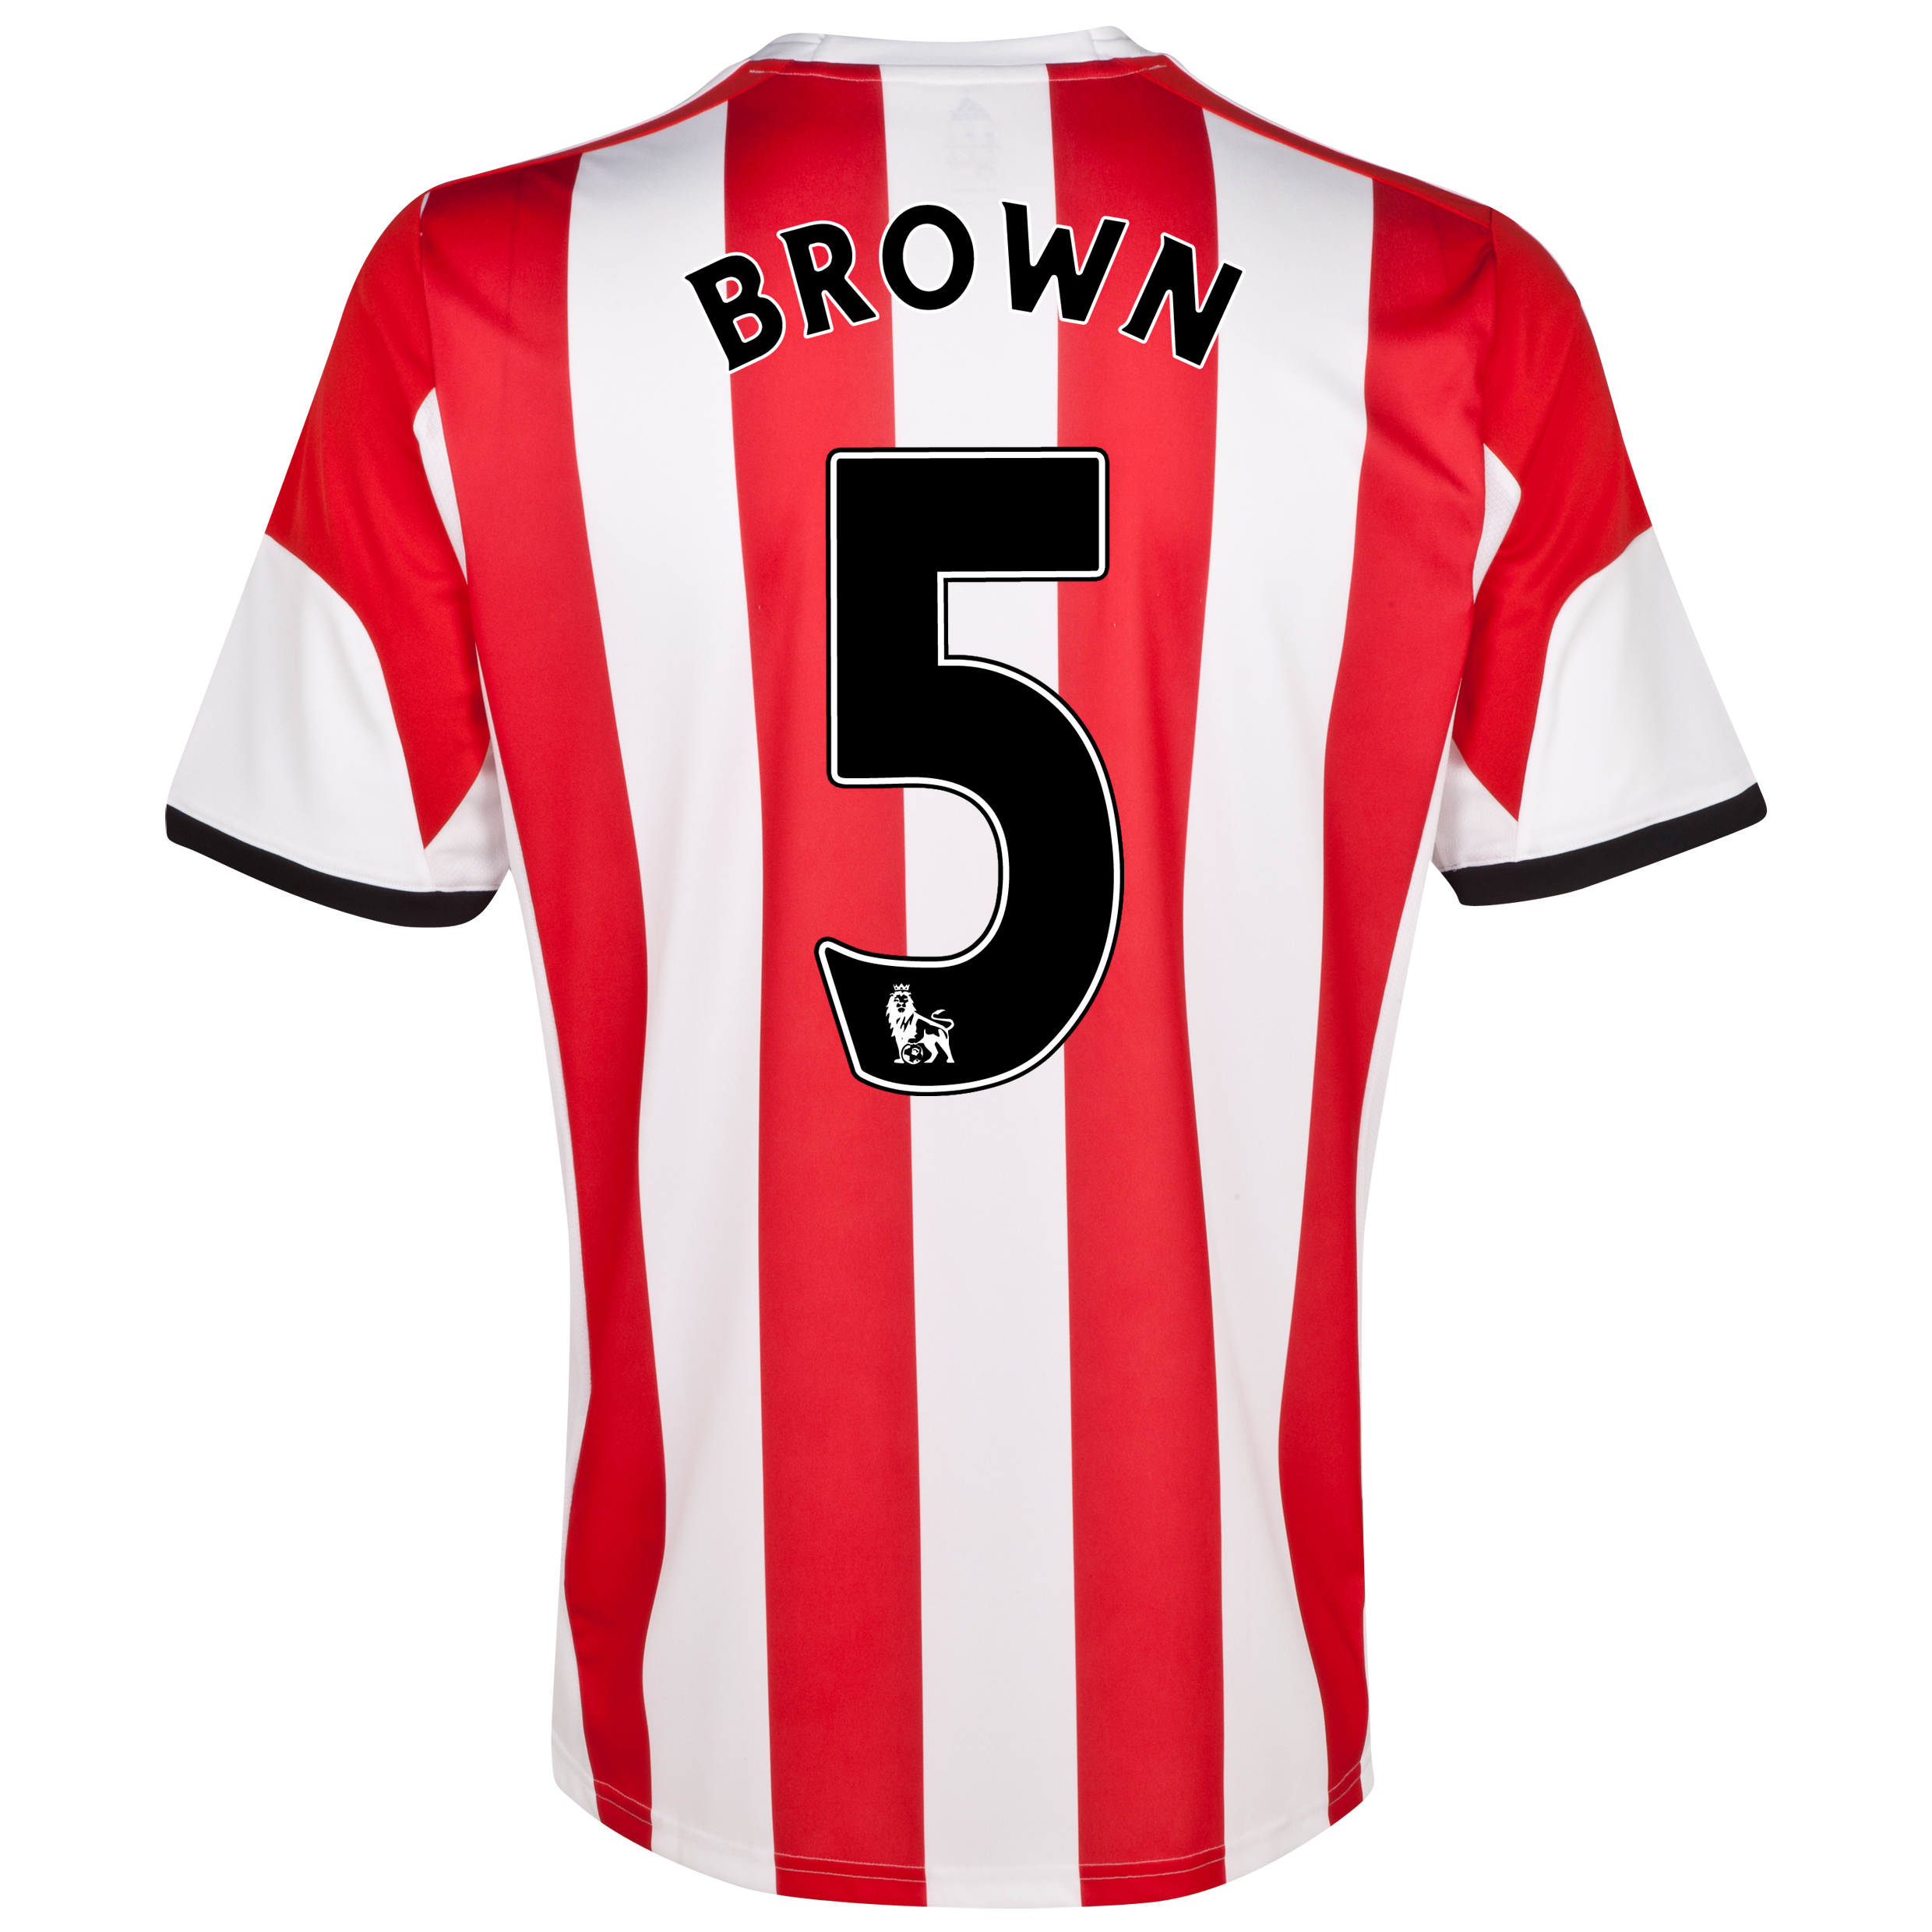 Sunderland Home Shirt 2013/14  with Brown 5 printing